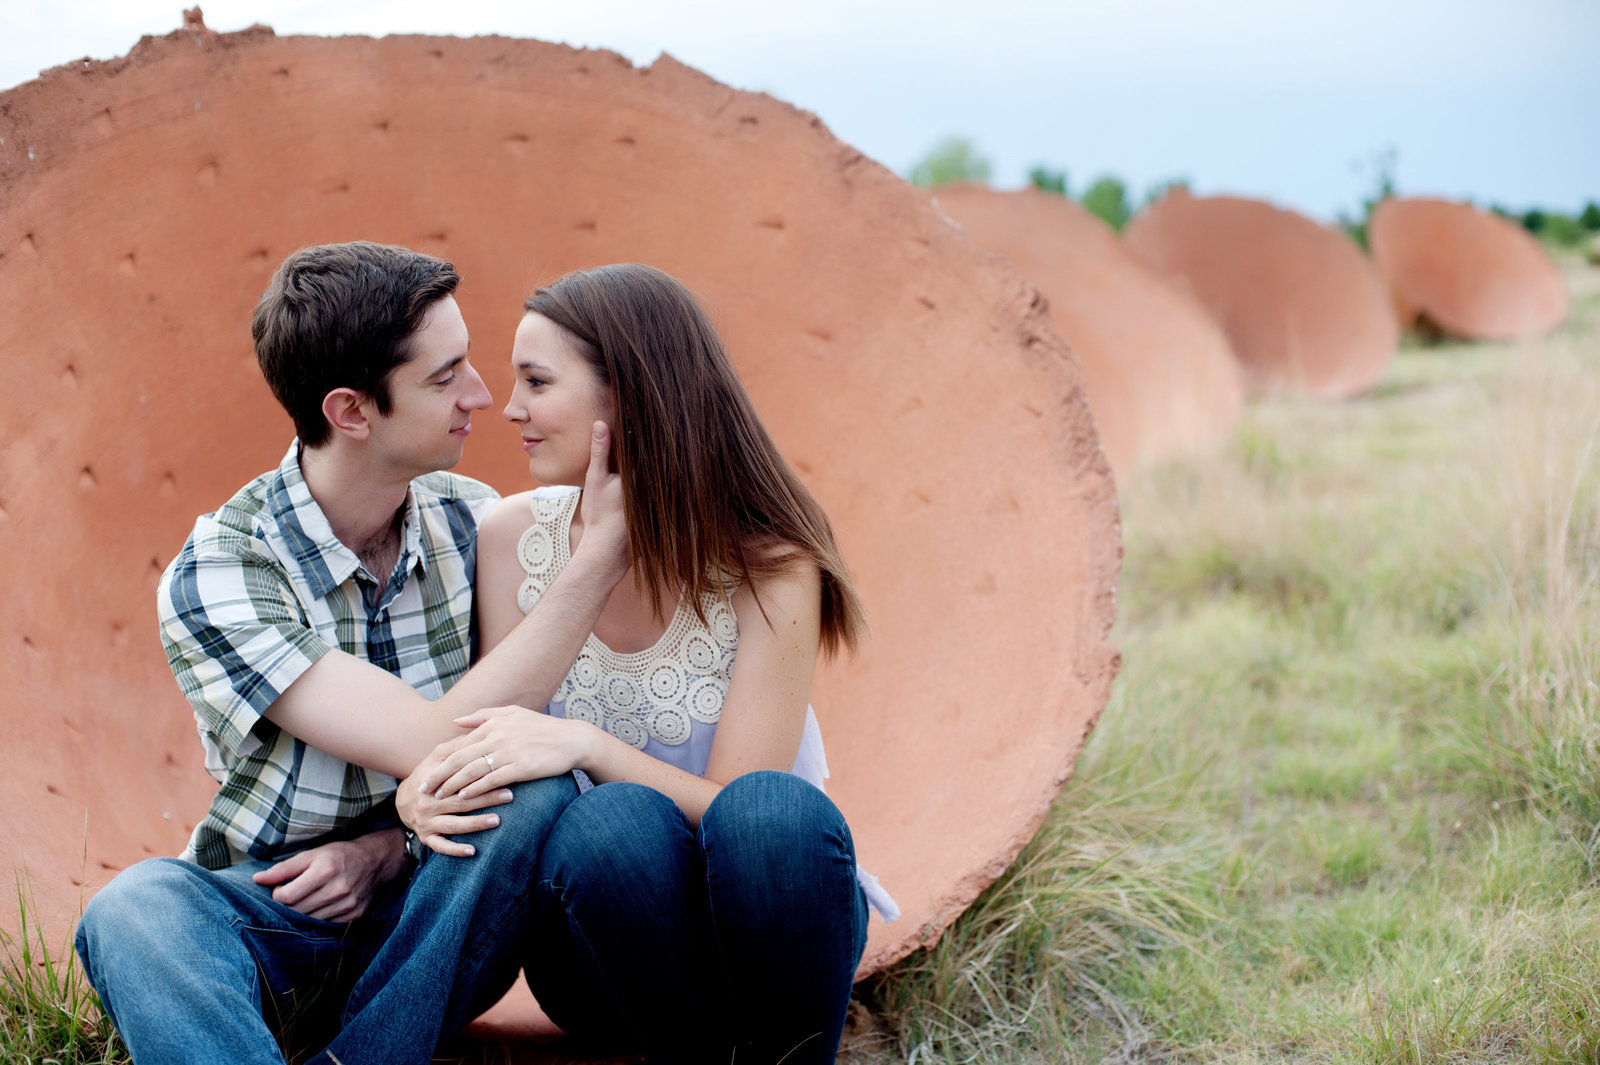 a man caresses his fiance's face as they sit in giant disc sculptures in denver